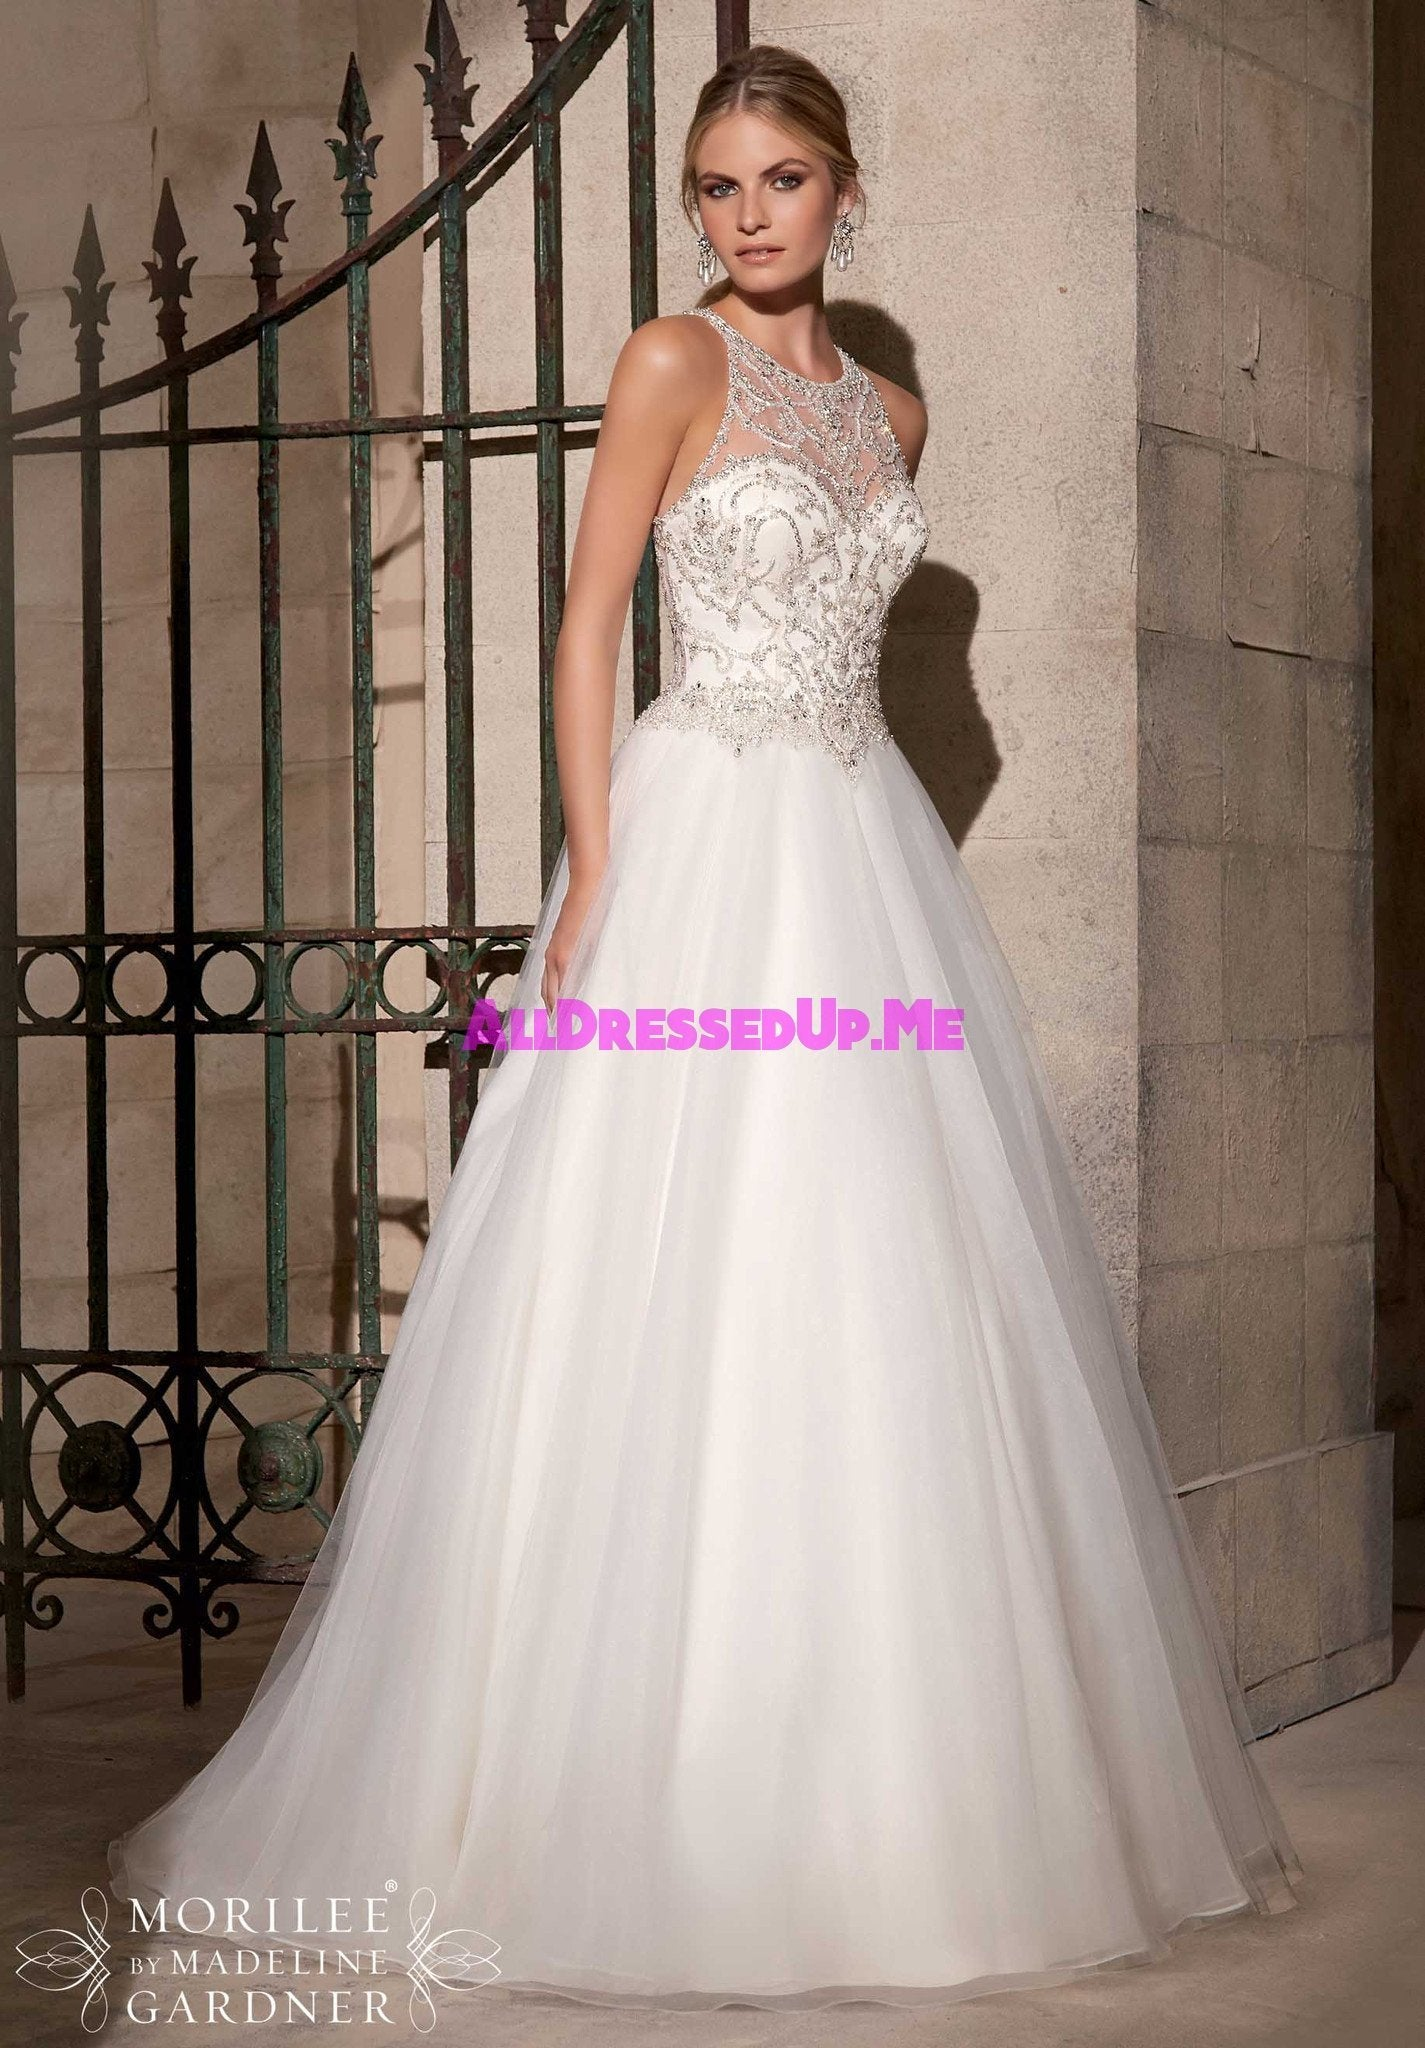 mori 2711 all dressed up bridal gown all dressed up